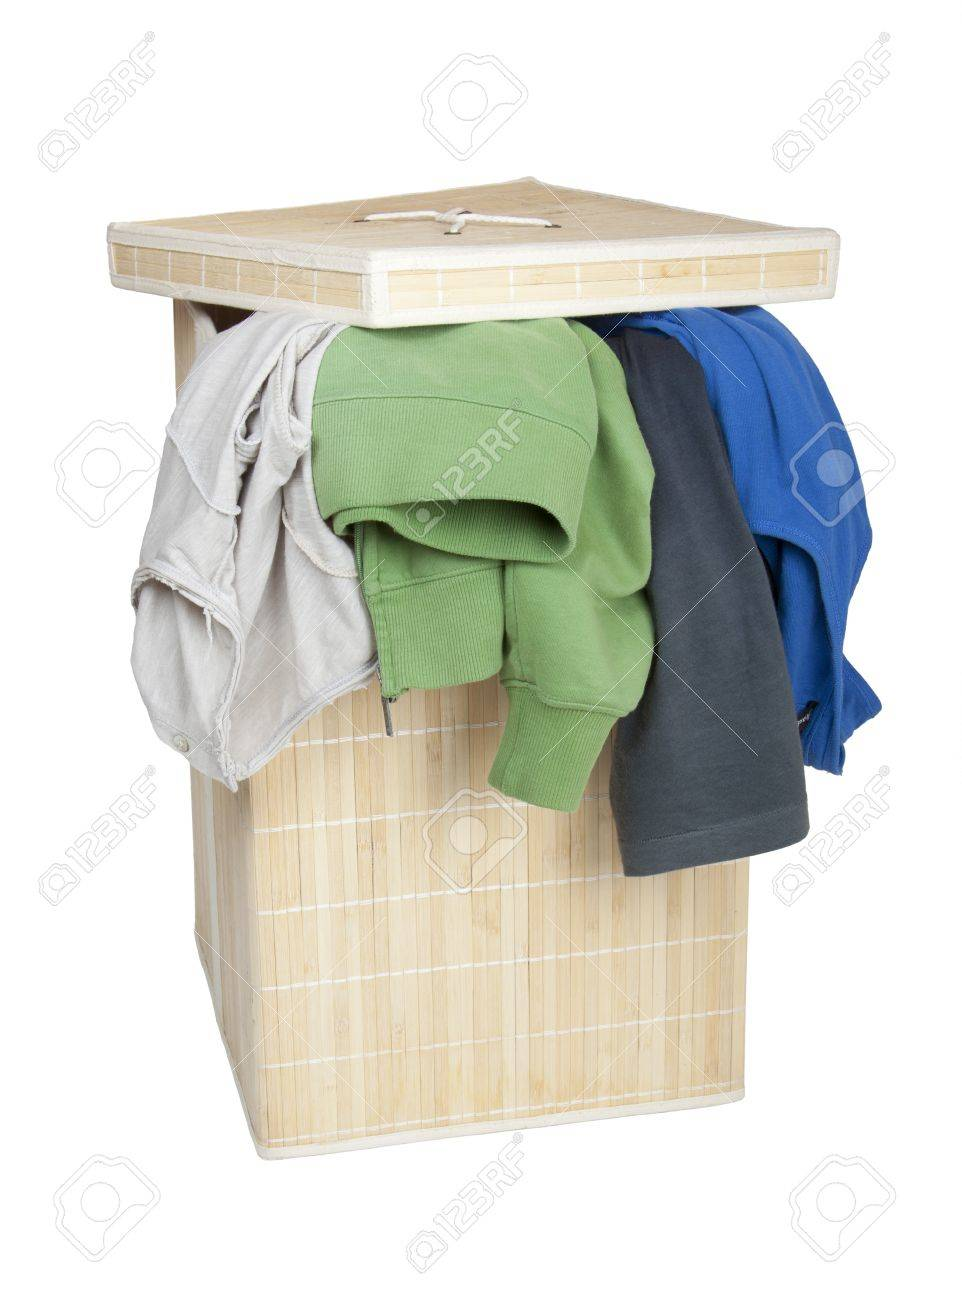 Box with Dirty Laundry Stock Photo - 14030308